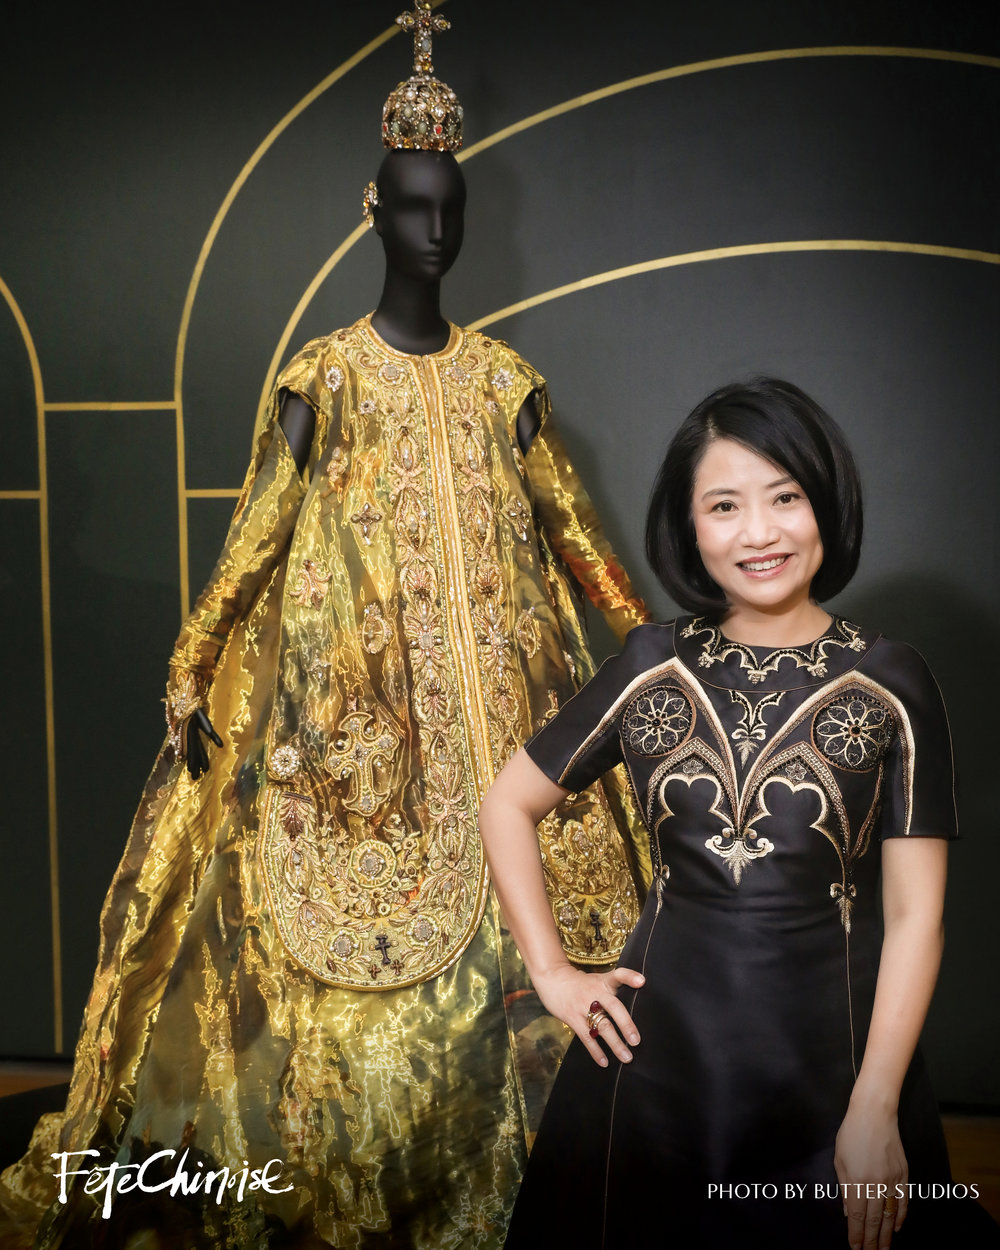 Guo Pei, haute couture designer, stands next to her work at the Vancouver Art Gallery. Photography by Butter Studios.